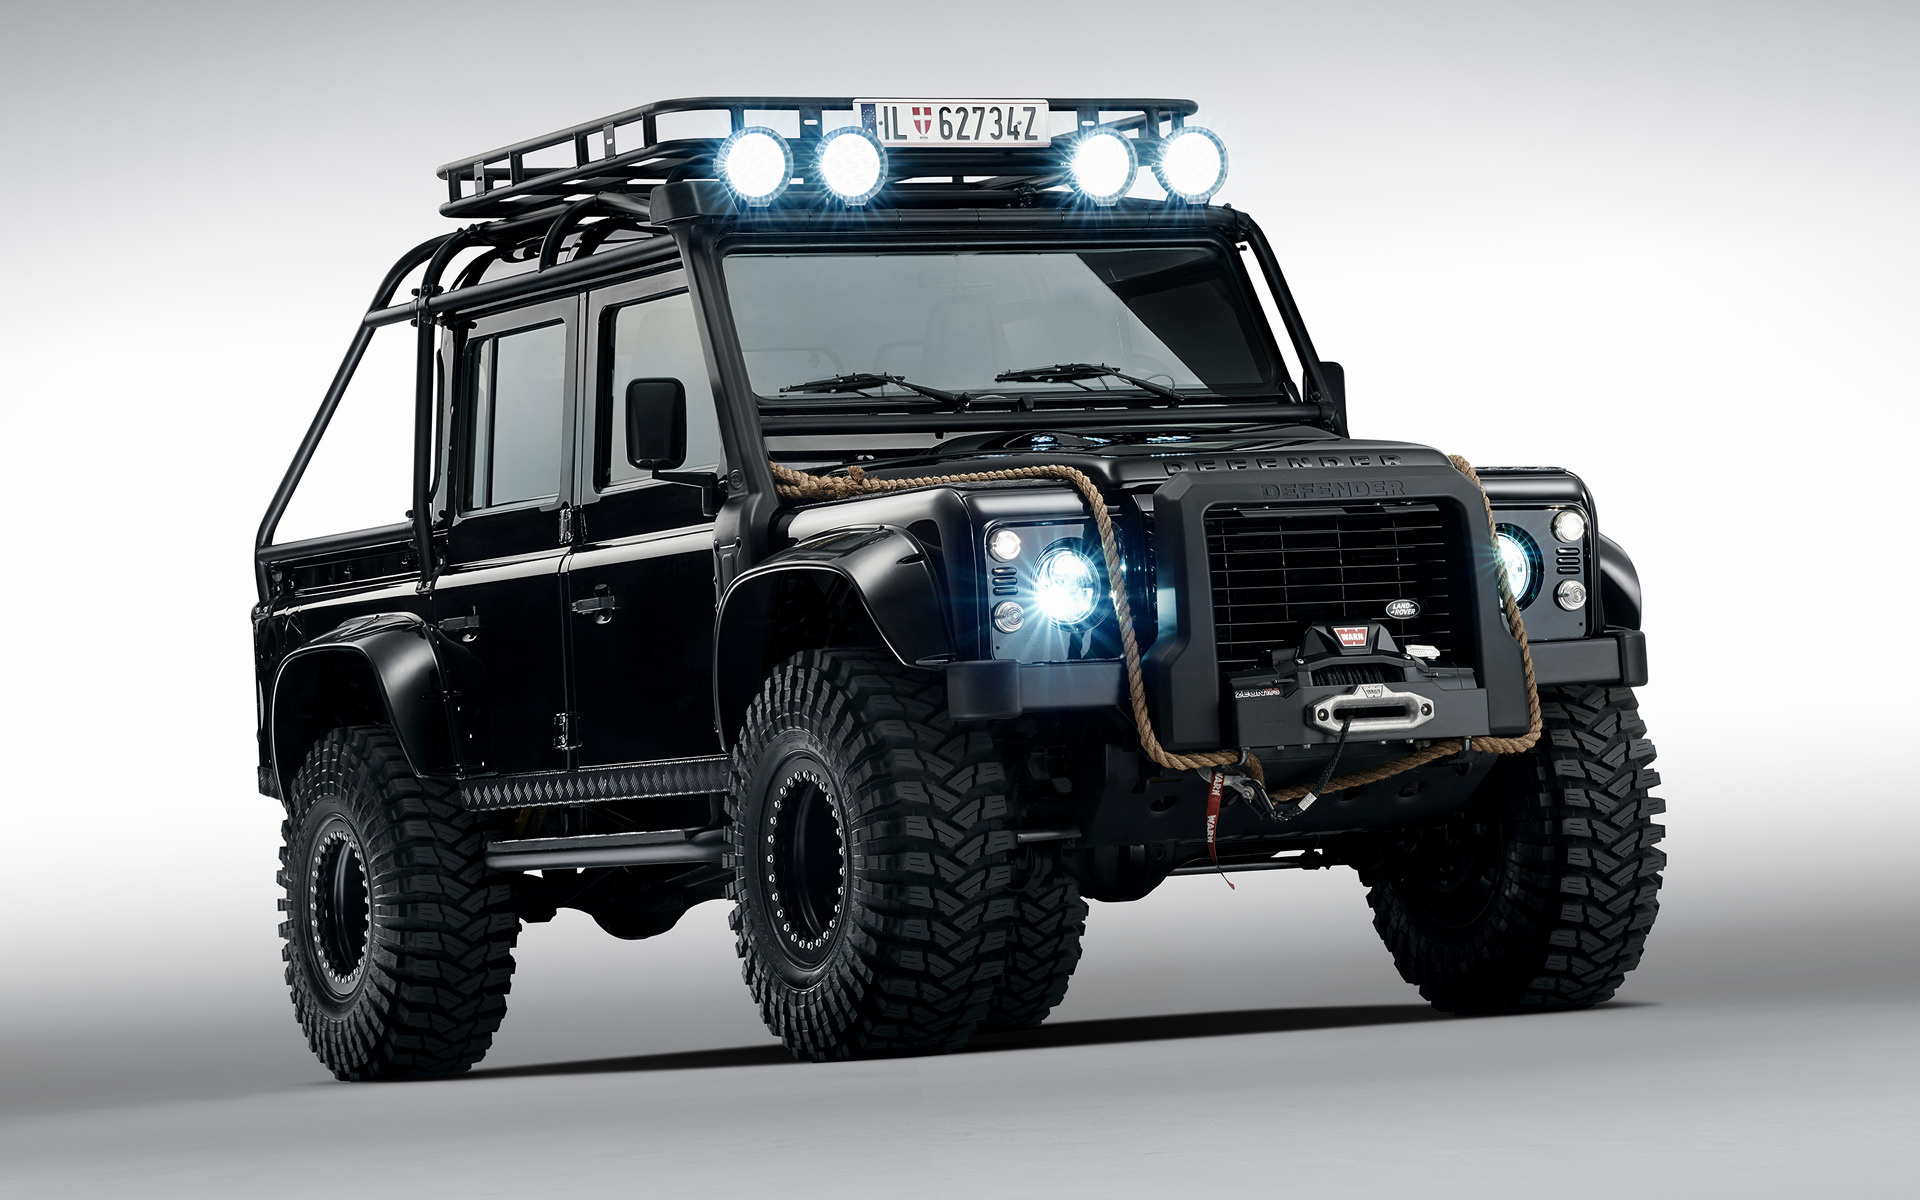 Parts Of A Car 94 >> 2015 Land Rover Defender 007 Spectre - Wallpapers and HD ...